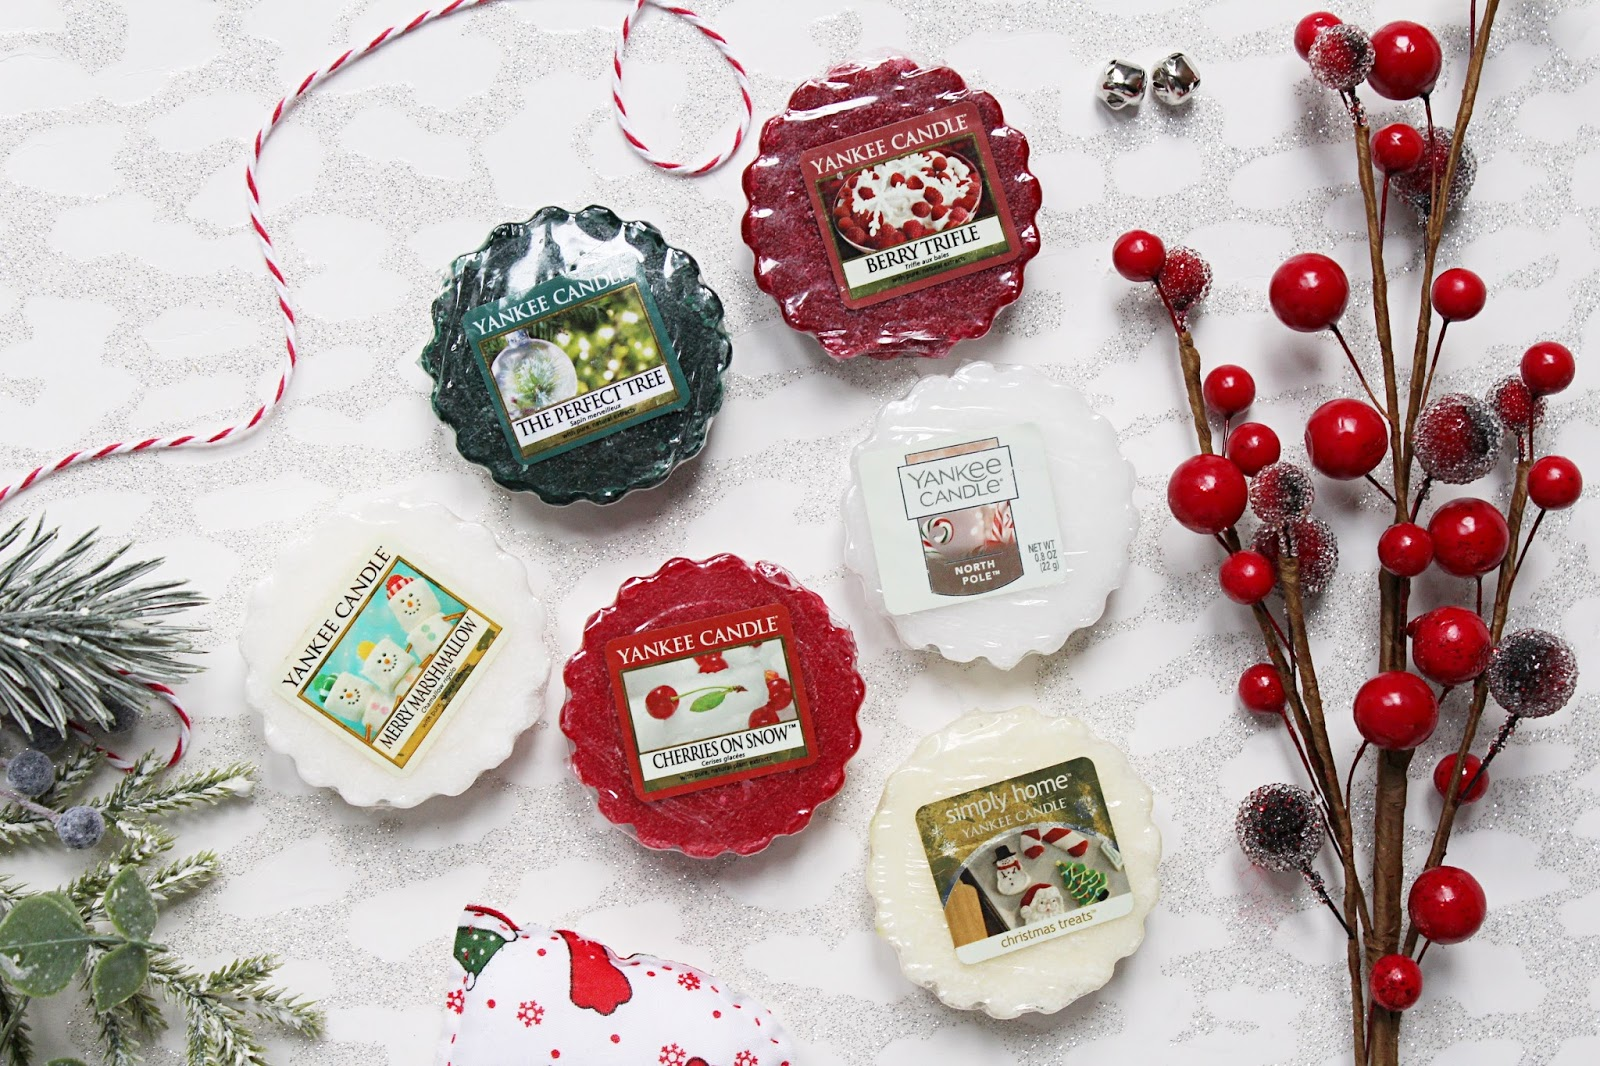 My Favourite Festive Yankee Candle Scents